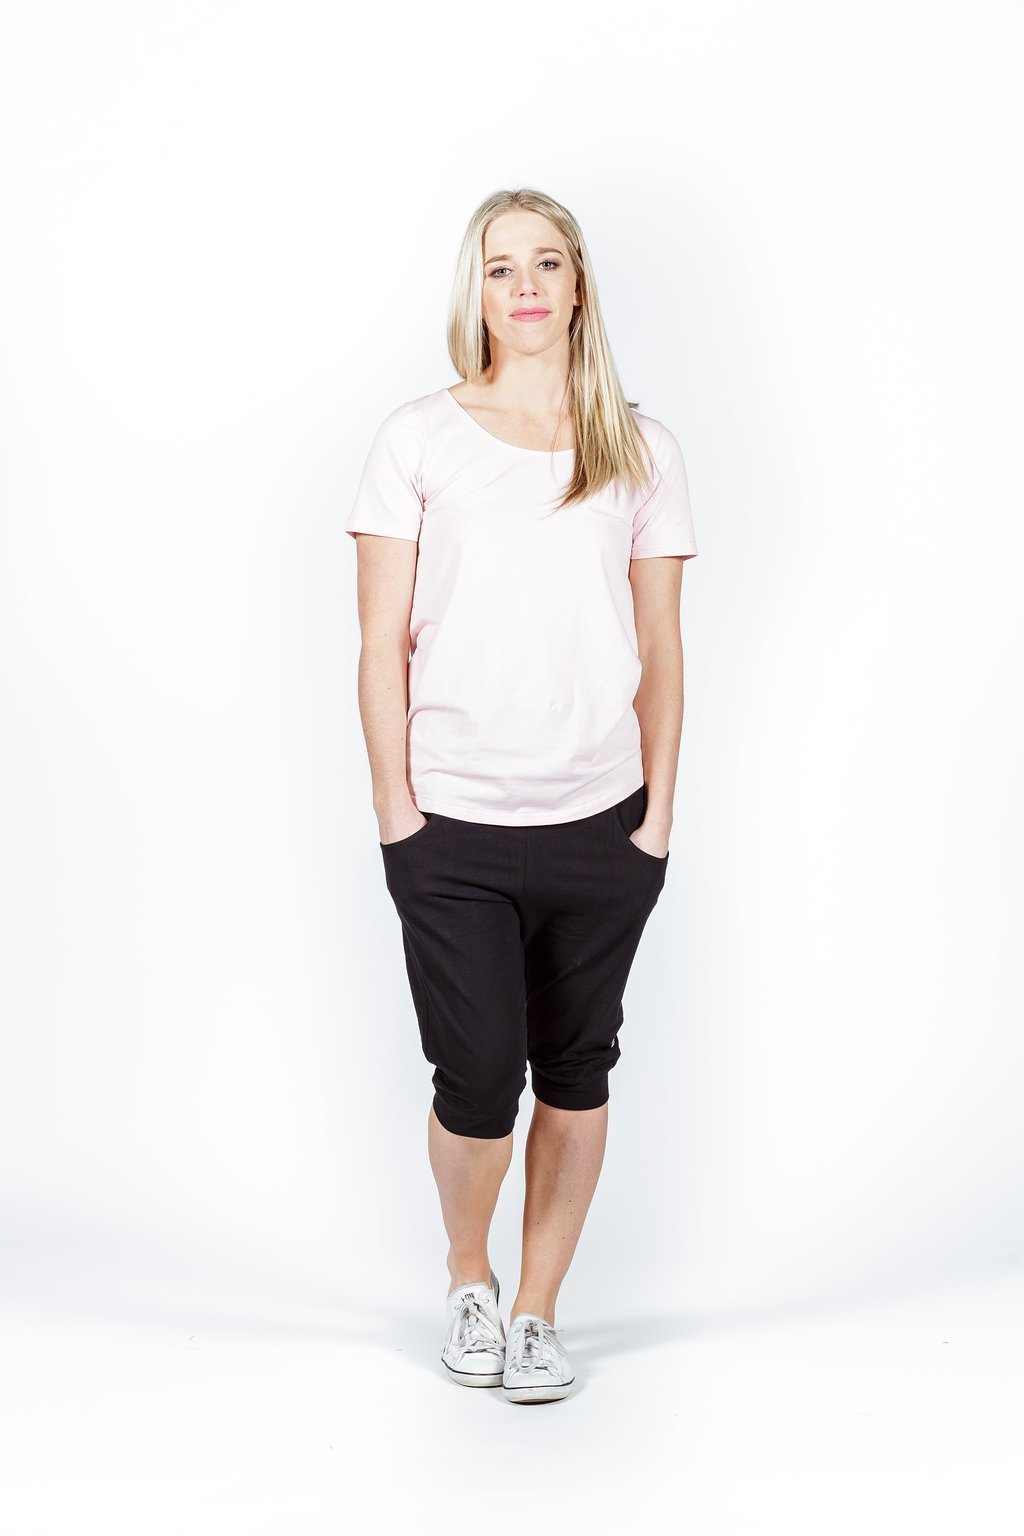 Home-Lee: 3/4 Apartment Pants - Black With White X Print - 10 image